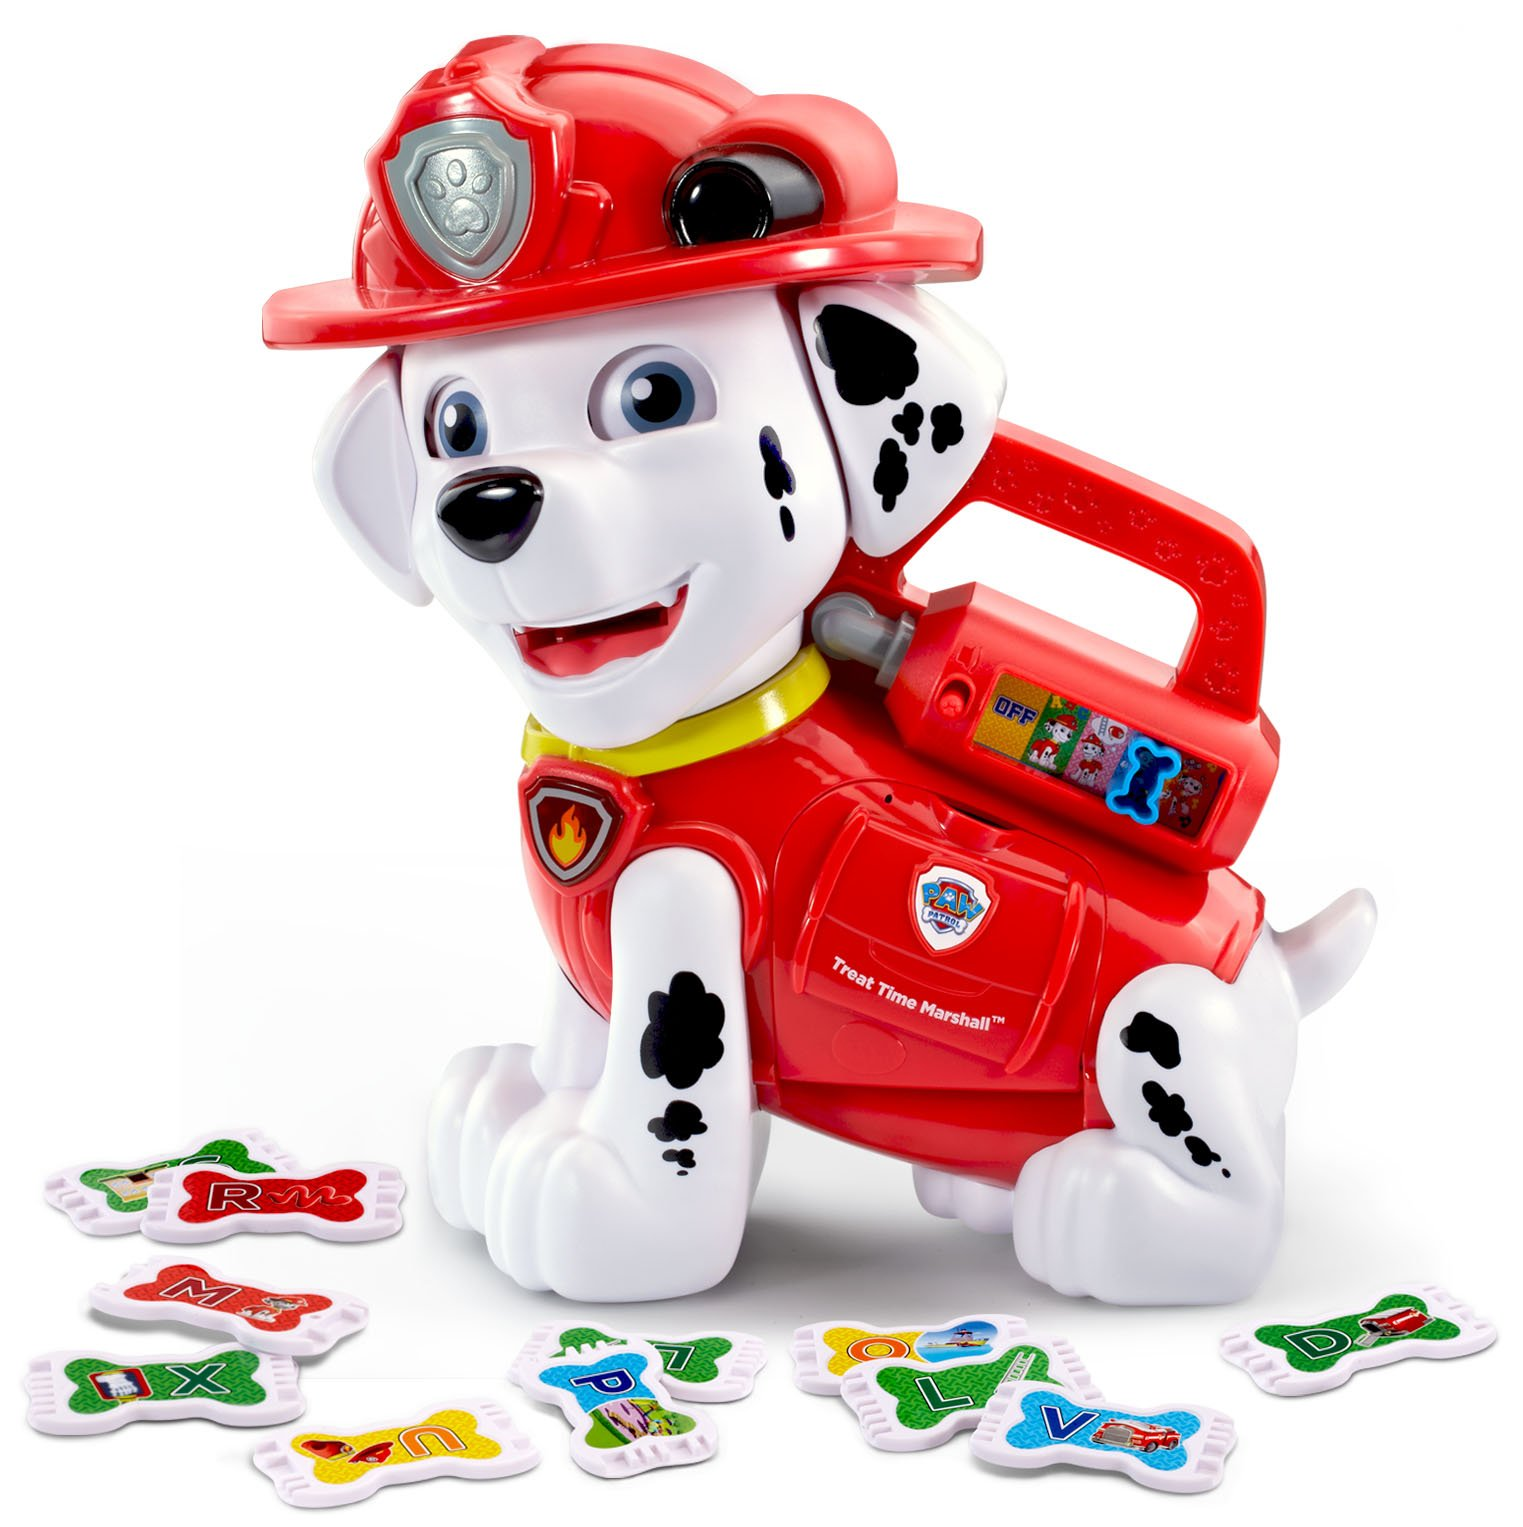 VTech Paw Patrol Treat Time Marshall by VTech